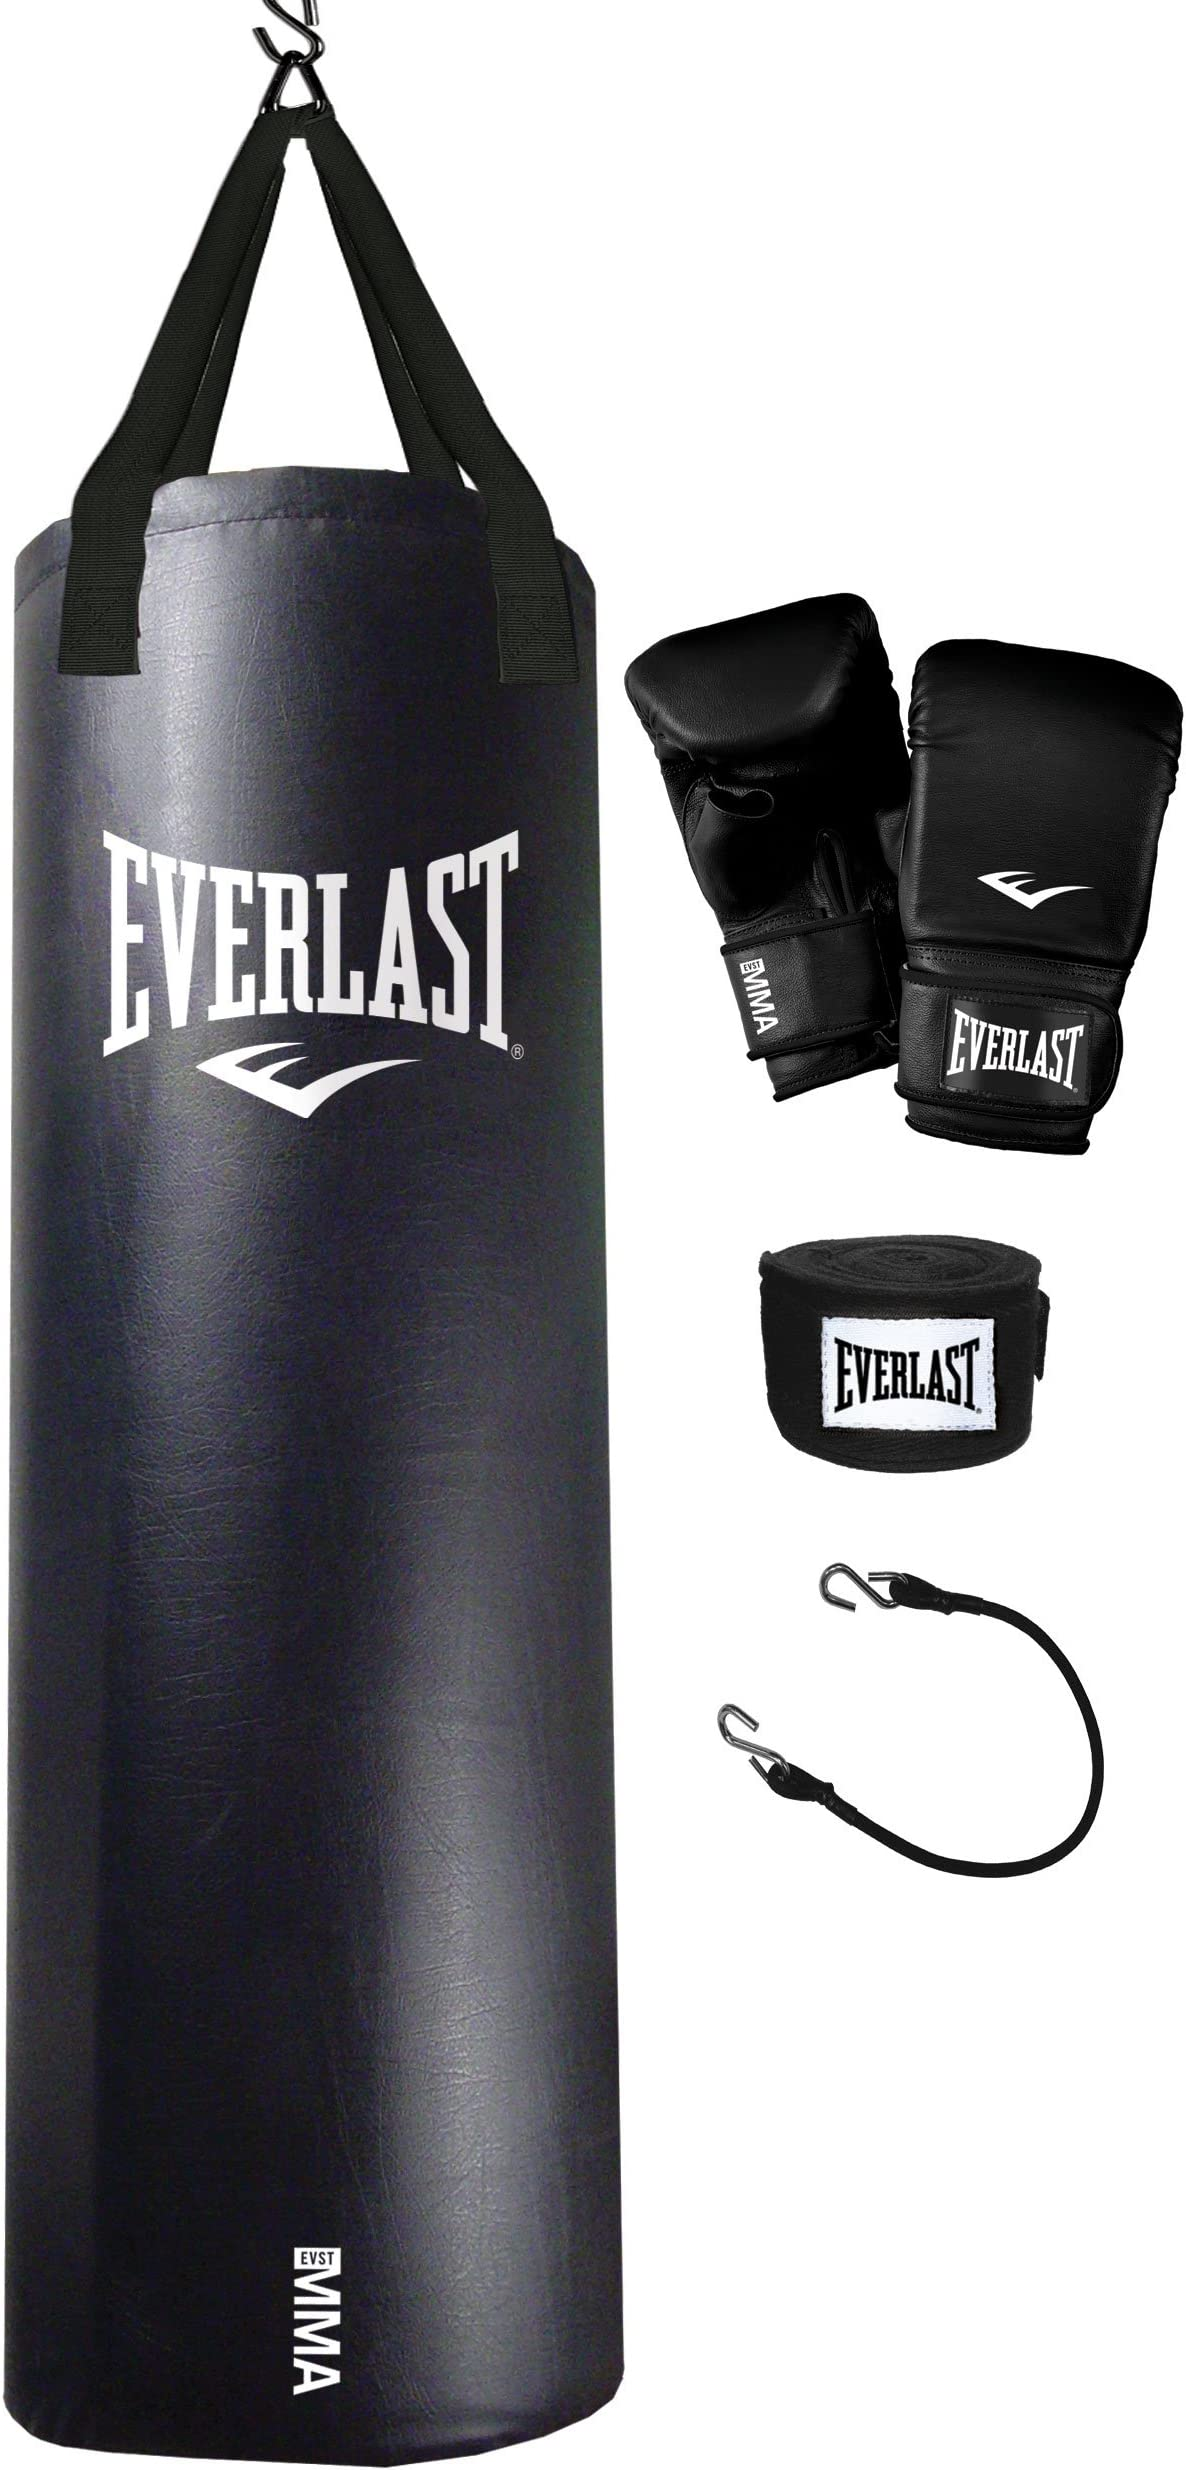 Everlast Fitness Workout 70 Pound Heavy Boxing Punching Bag Gray Brand New MMA